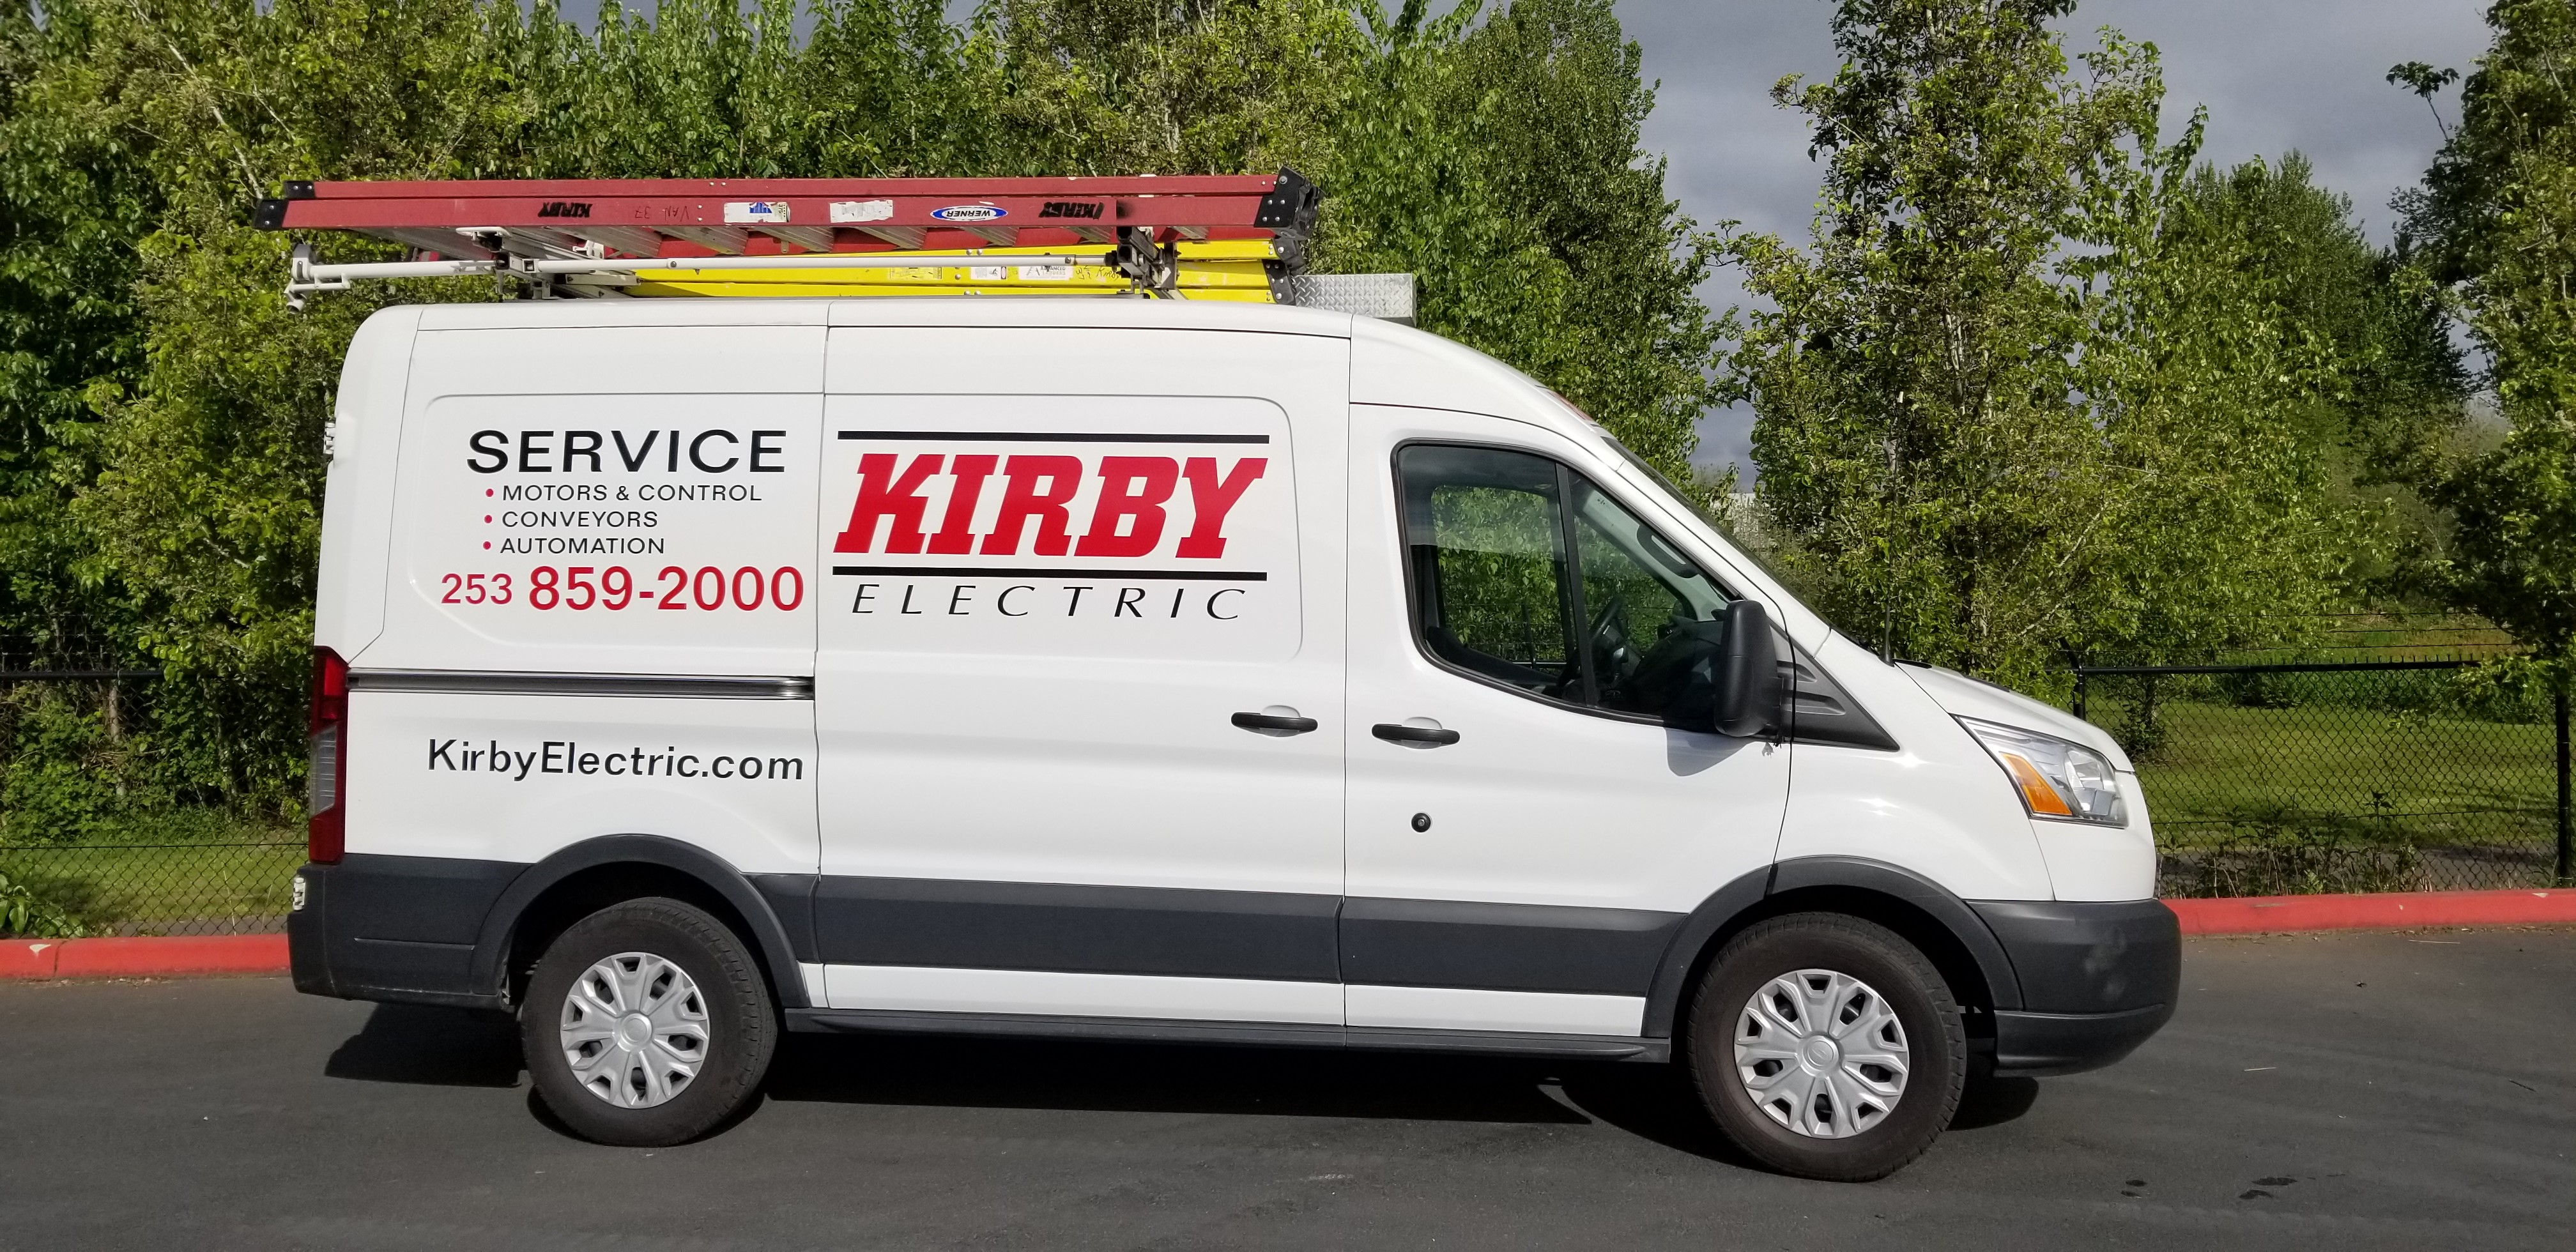 Electrical Engineering at Kirby Electric